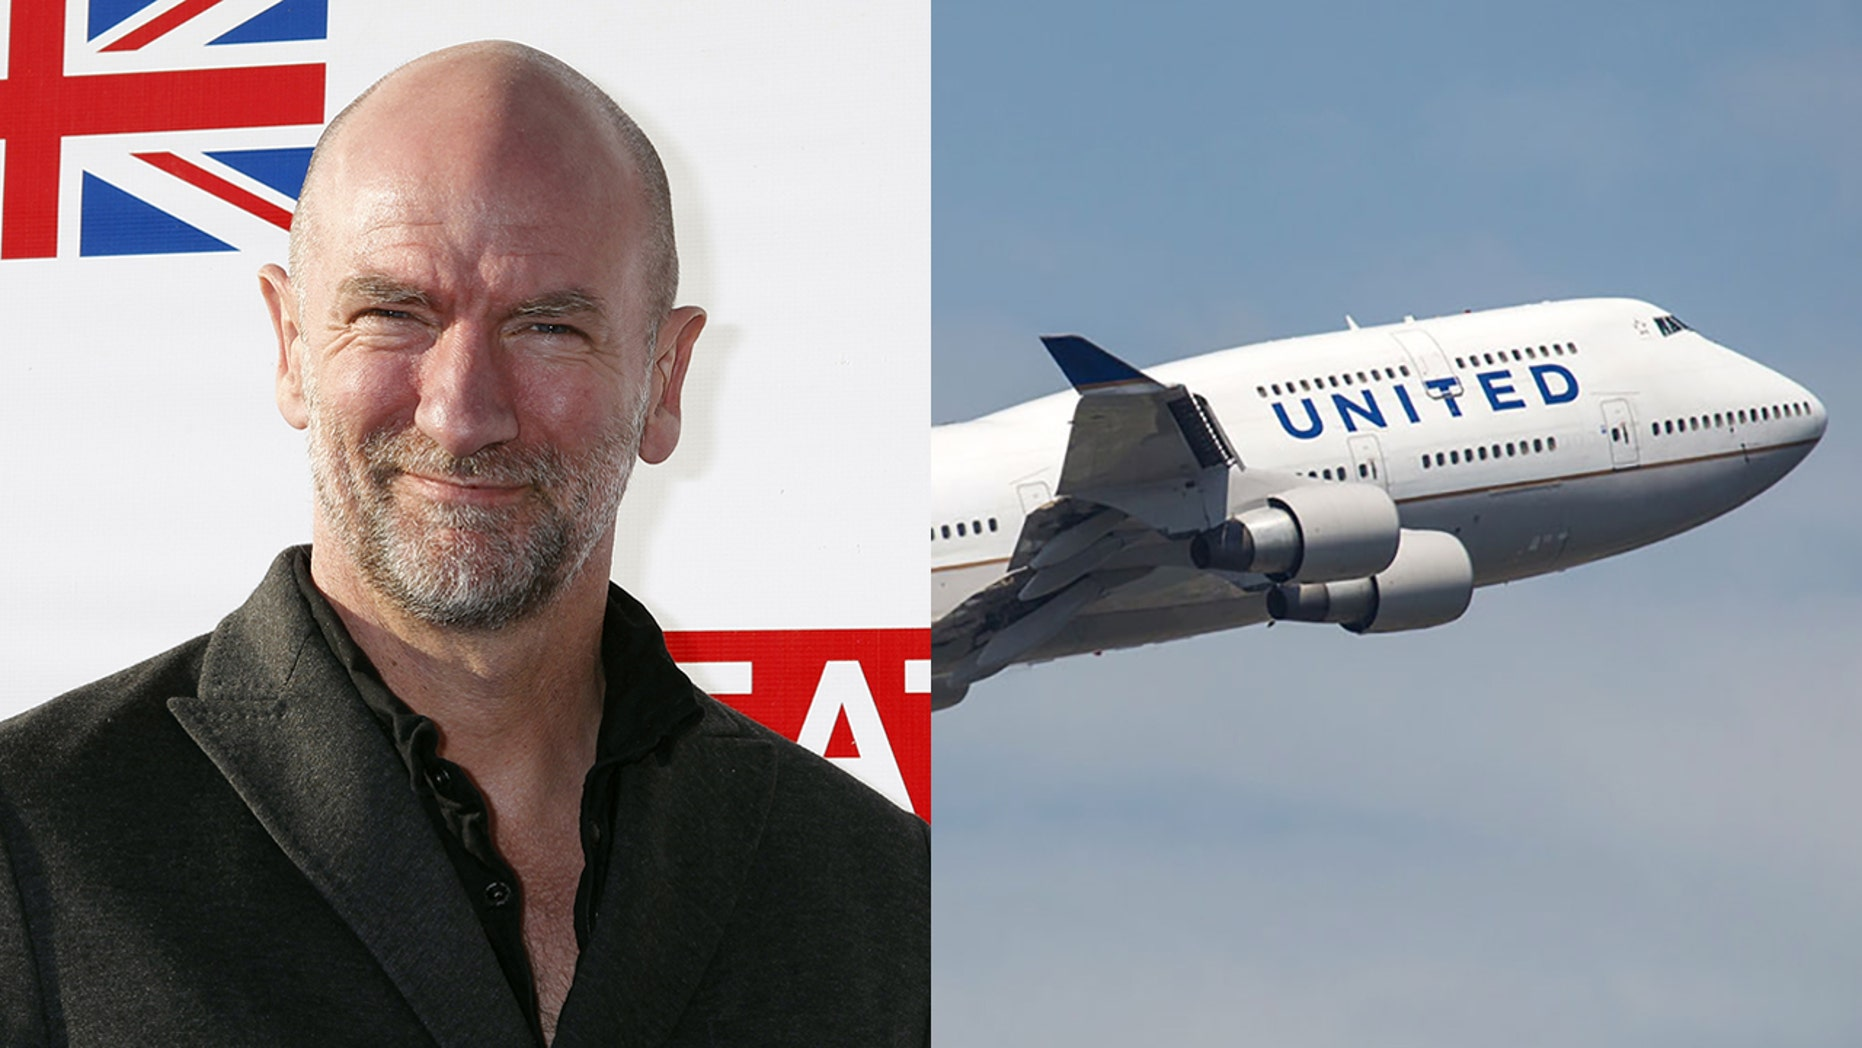 """Scottish actor Graham McTavish claims to have overheard his """"rude"""" United crew making insensitive jokes in the wake of a recent incident."""